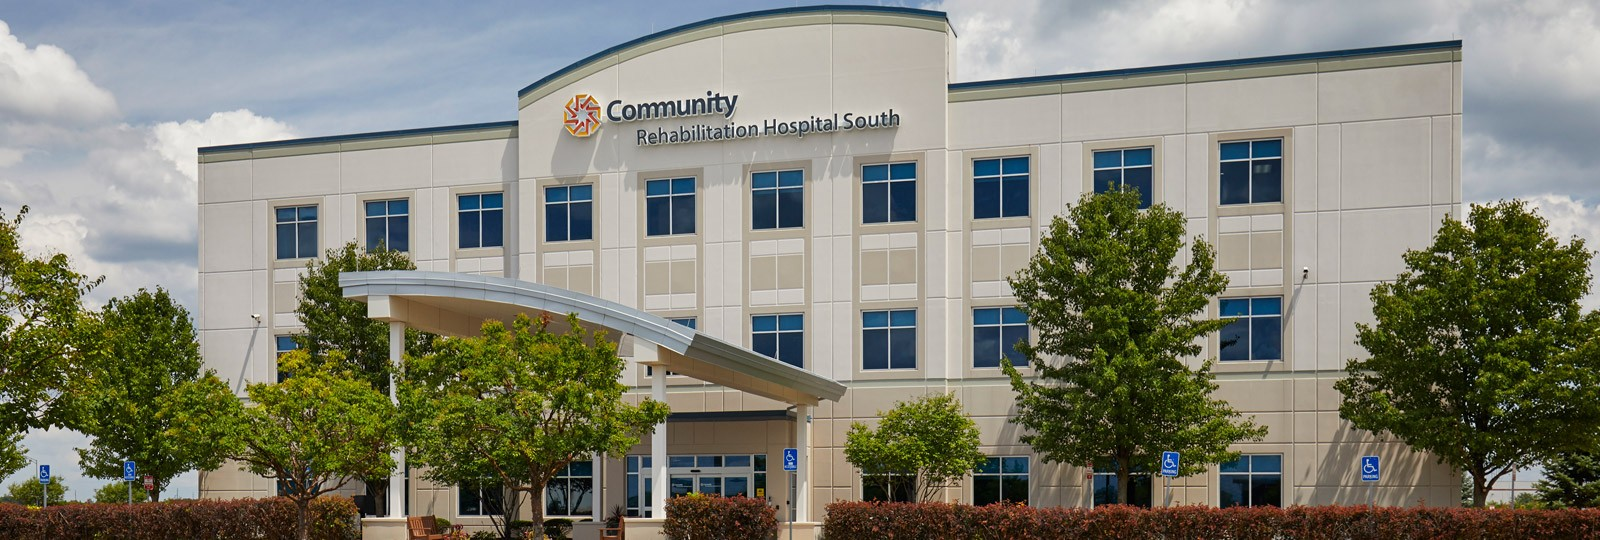 Community Rehabilitation Hospital South